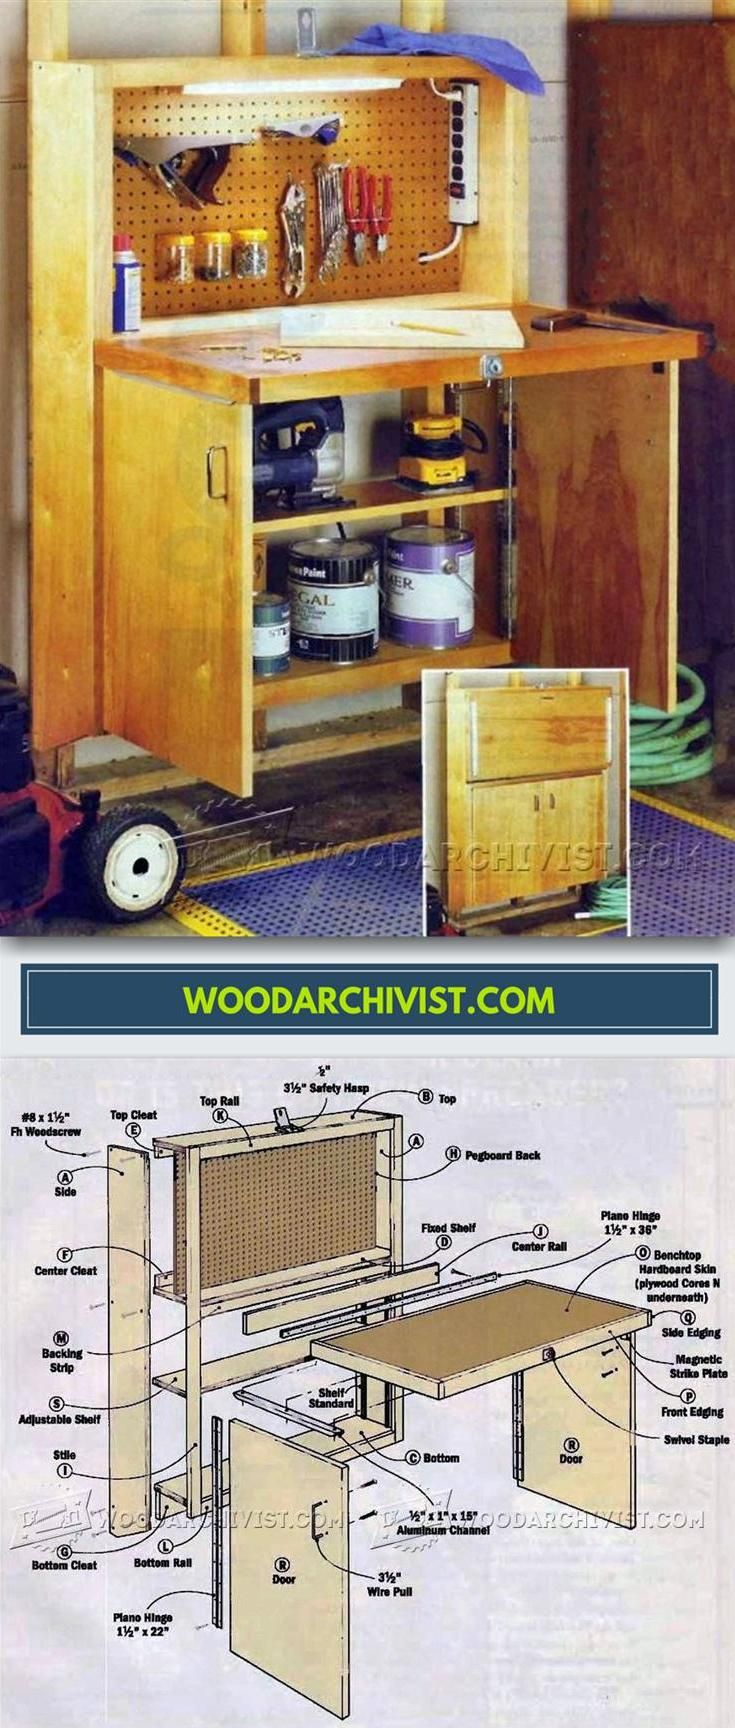 DIY Fold Down Workbench - Workshop Solutions Projects, Tips and Tricks | WoodArchivist.com